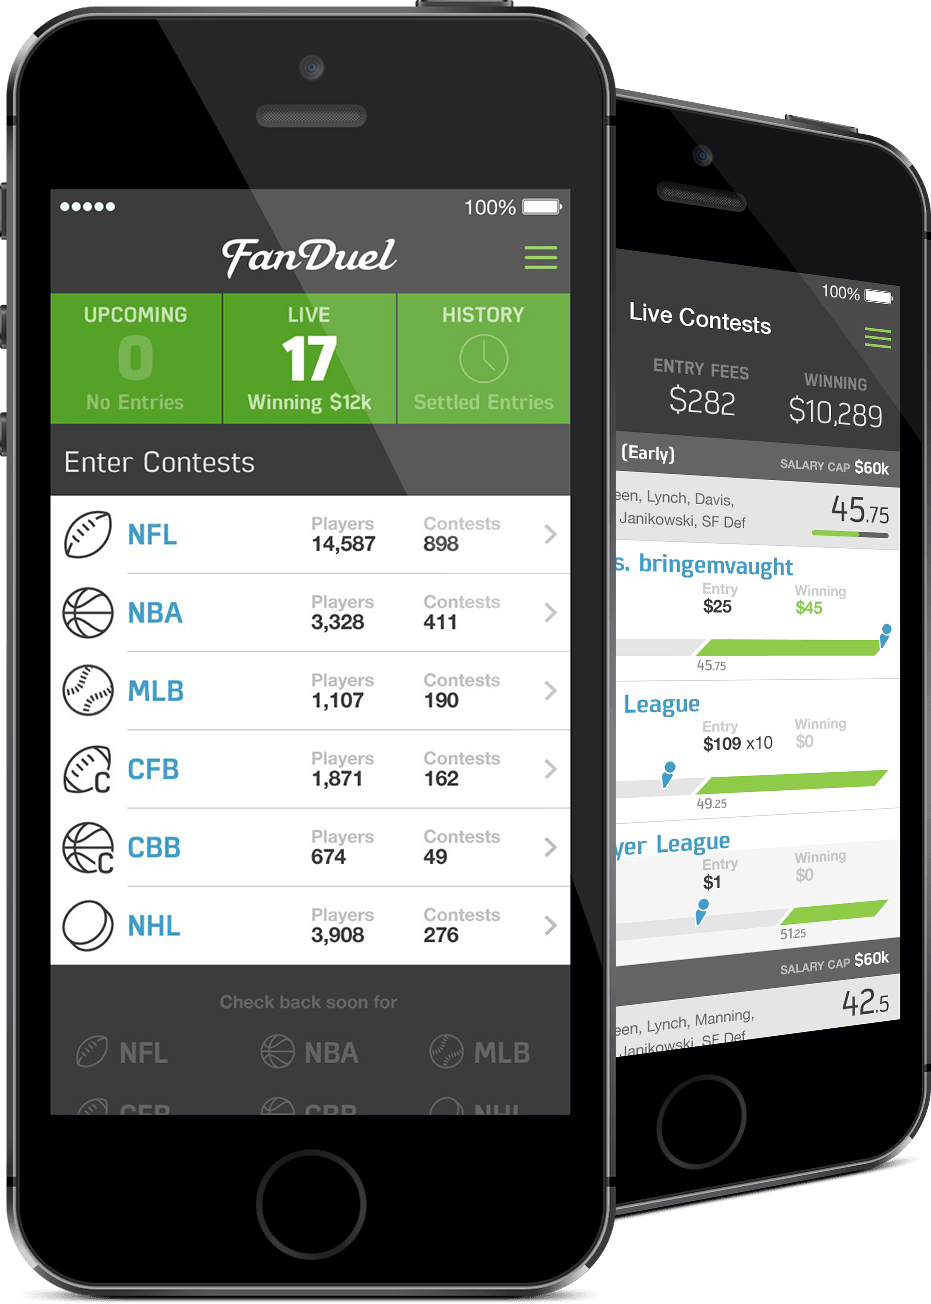 does the fanduel app have a good interface